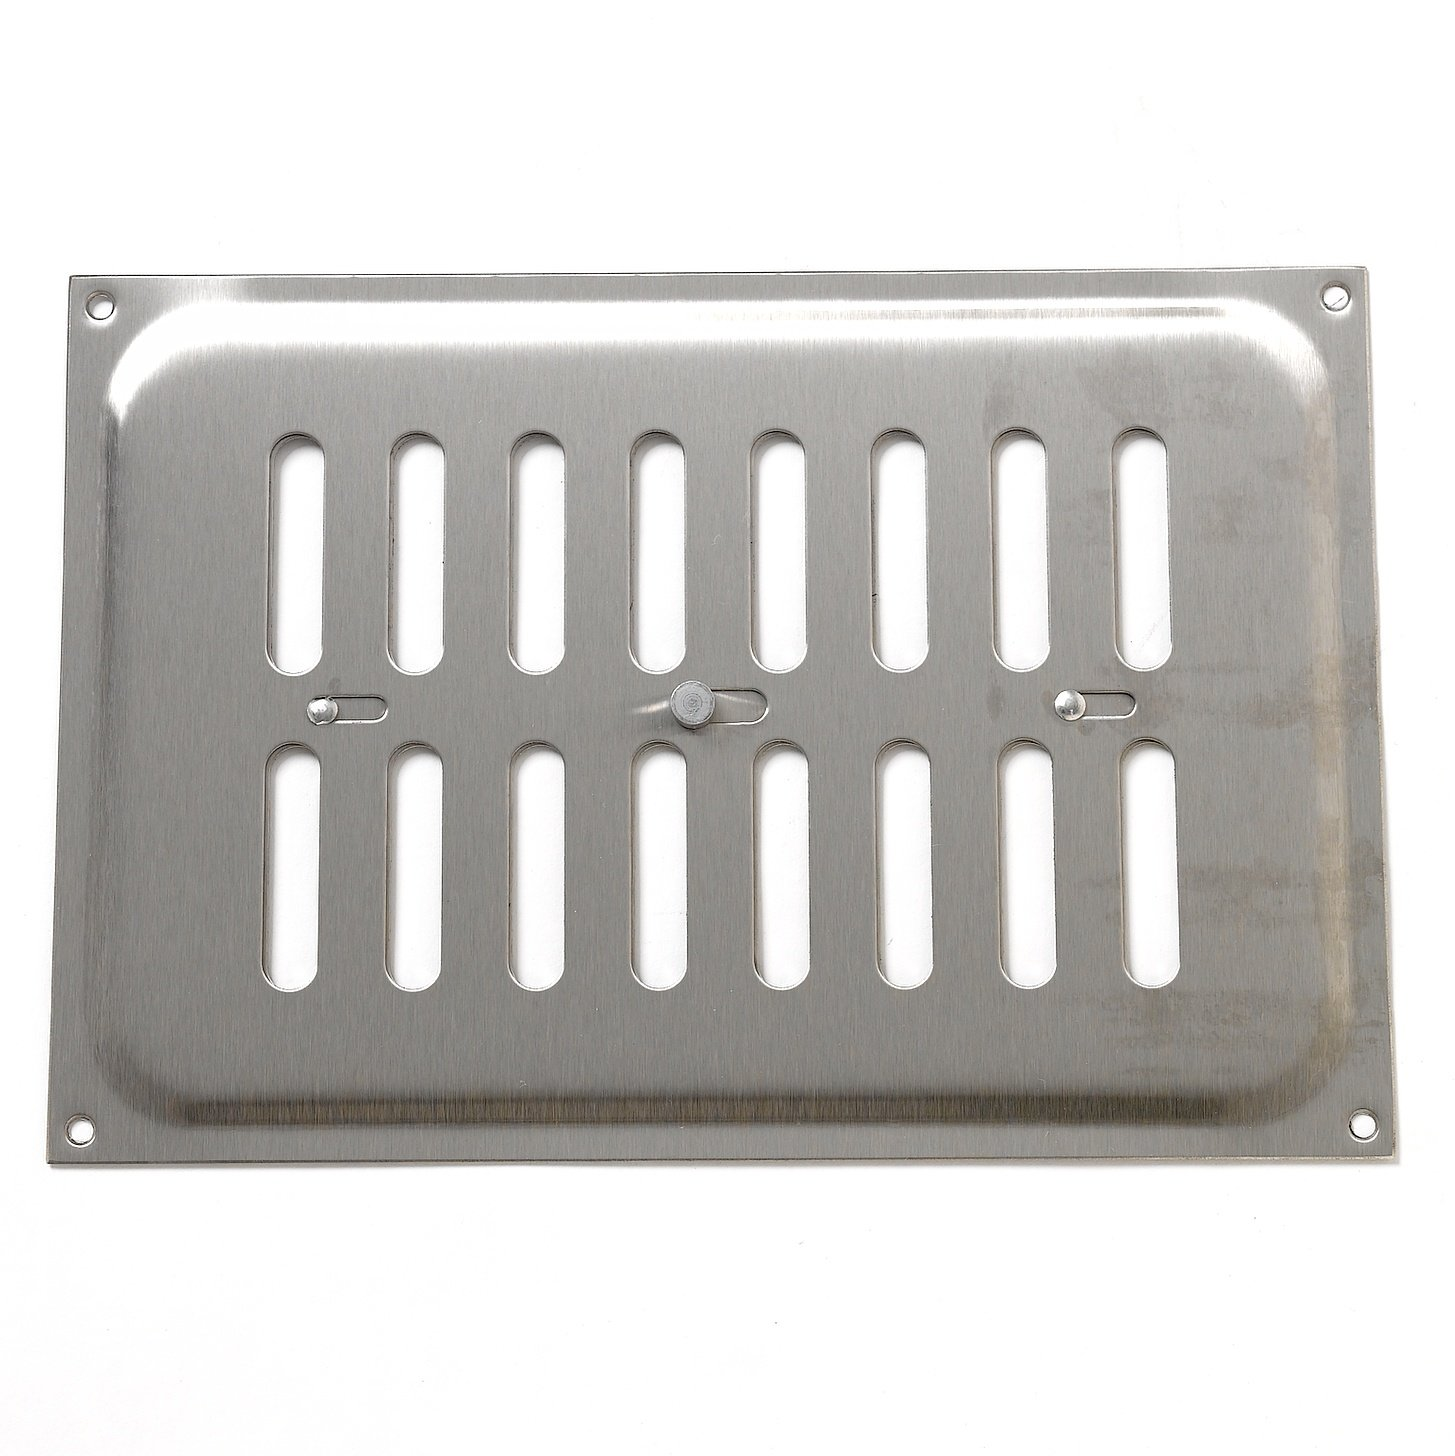 Bulk Hardware BH00535 Fully Adjustable Open & Close Air Vent Grille, 240 x 165 mm (9.45 x 6.5 inches) - Stainless Steel